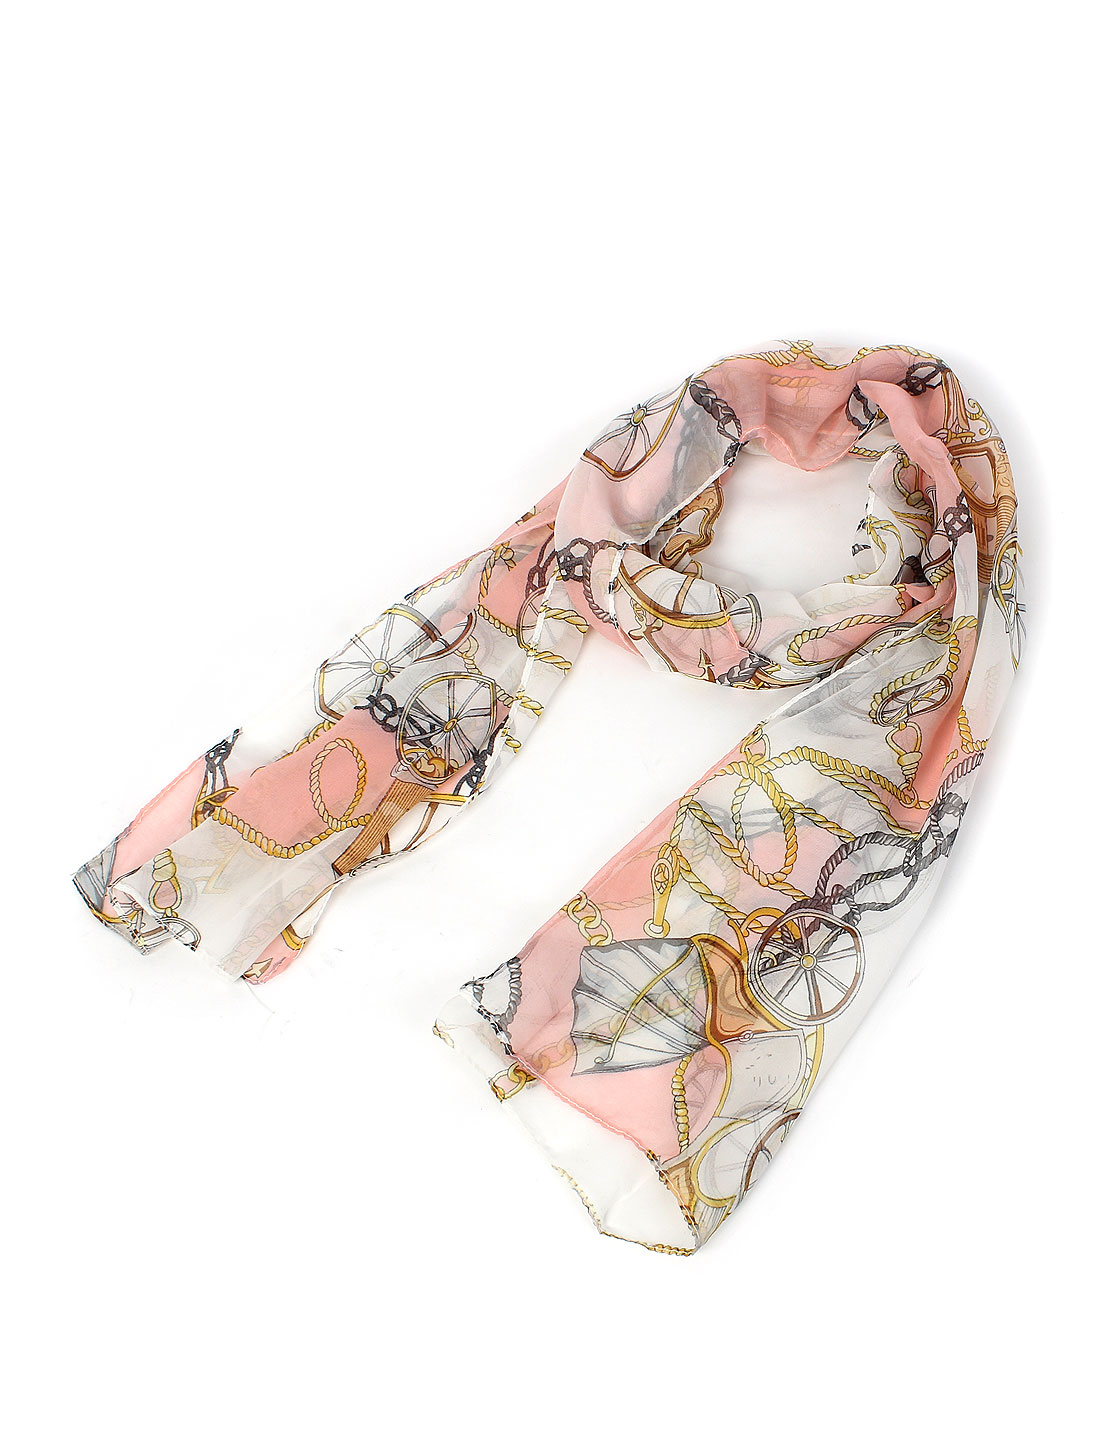 Women Lady Fashion Wheel Rope Print Long Soft Chiffon Scarf Shawl Wrap Colorful